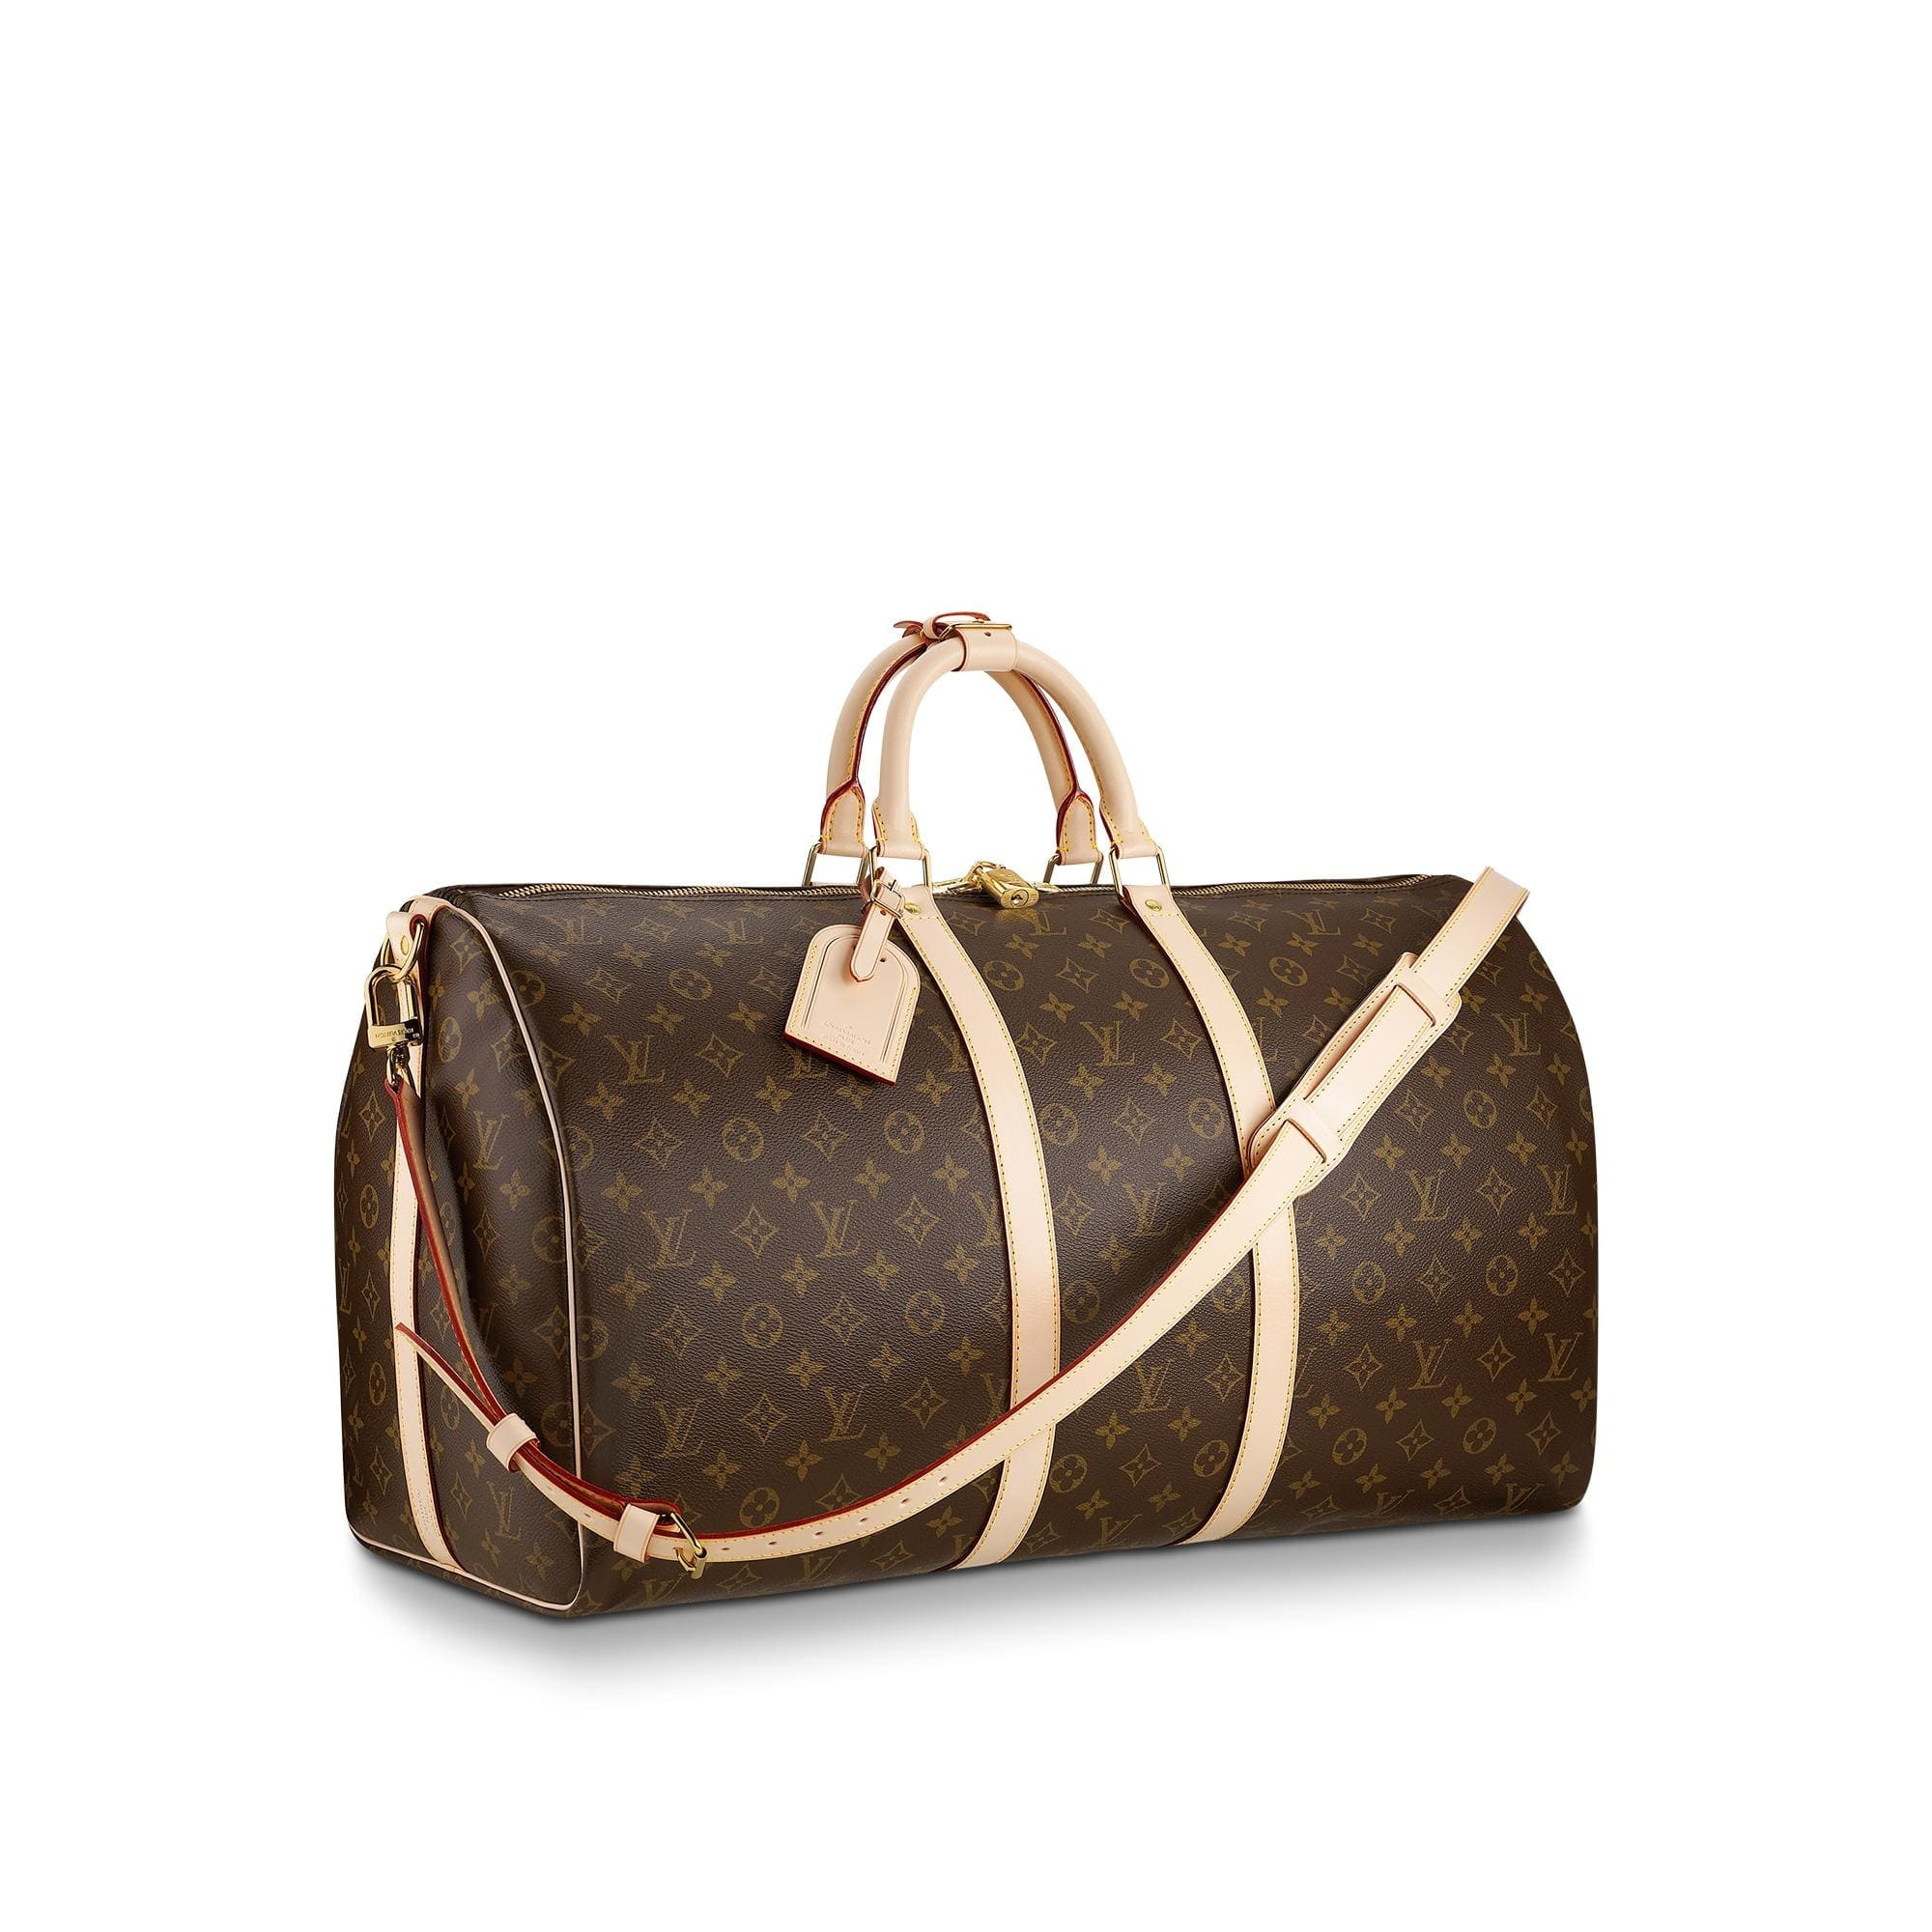 Louis Vuitton Keepall Bandouliere Monogram 55 (With Accessories) Brown